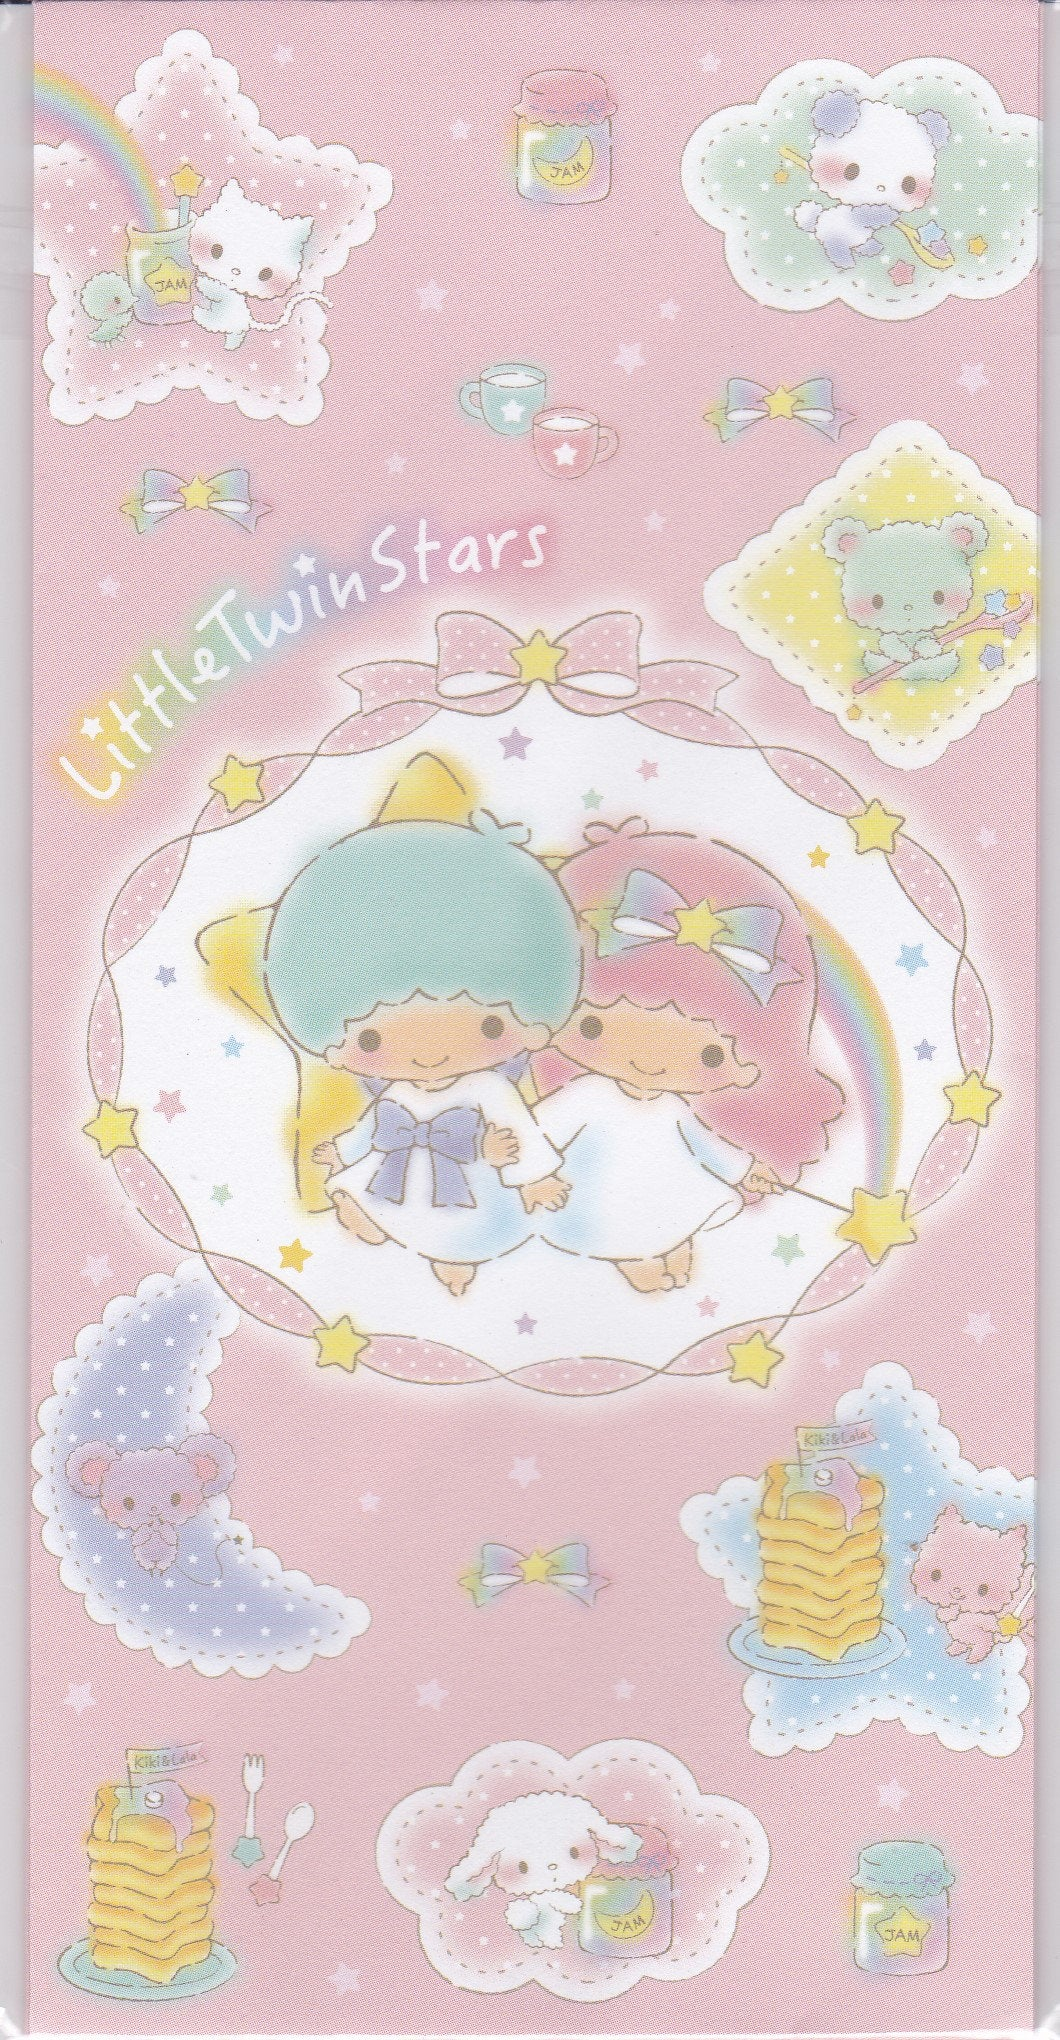 Sets of 3 Sanrio Original Little Twin Stars Envelopes with 3 Stickers - Boutique SWEET BIRDIE